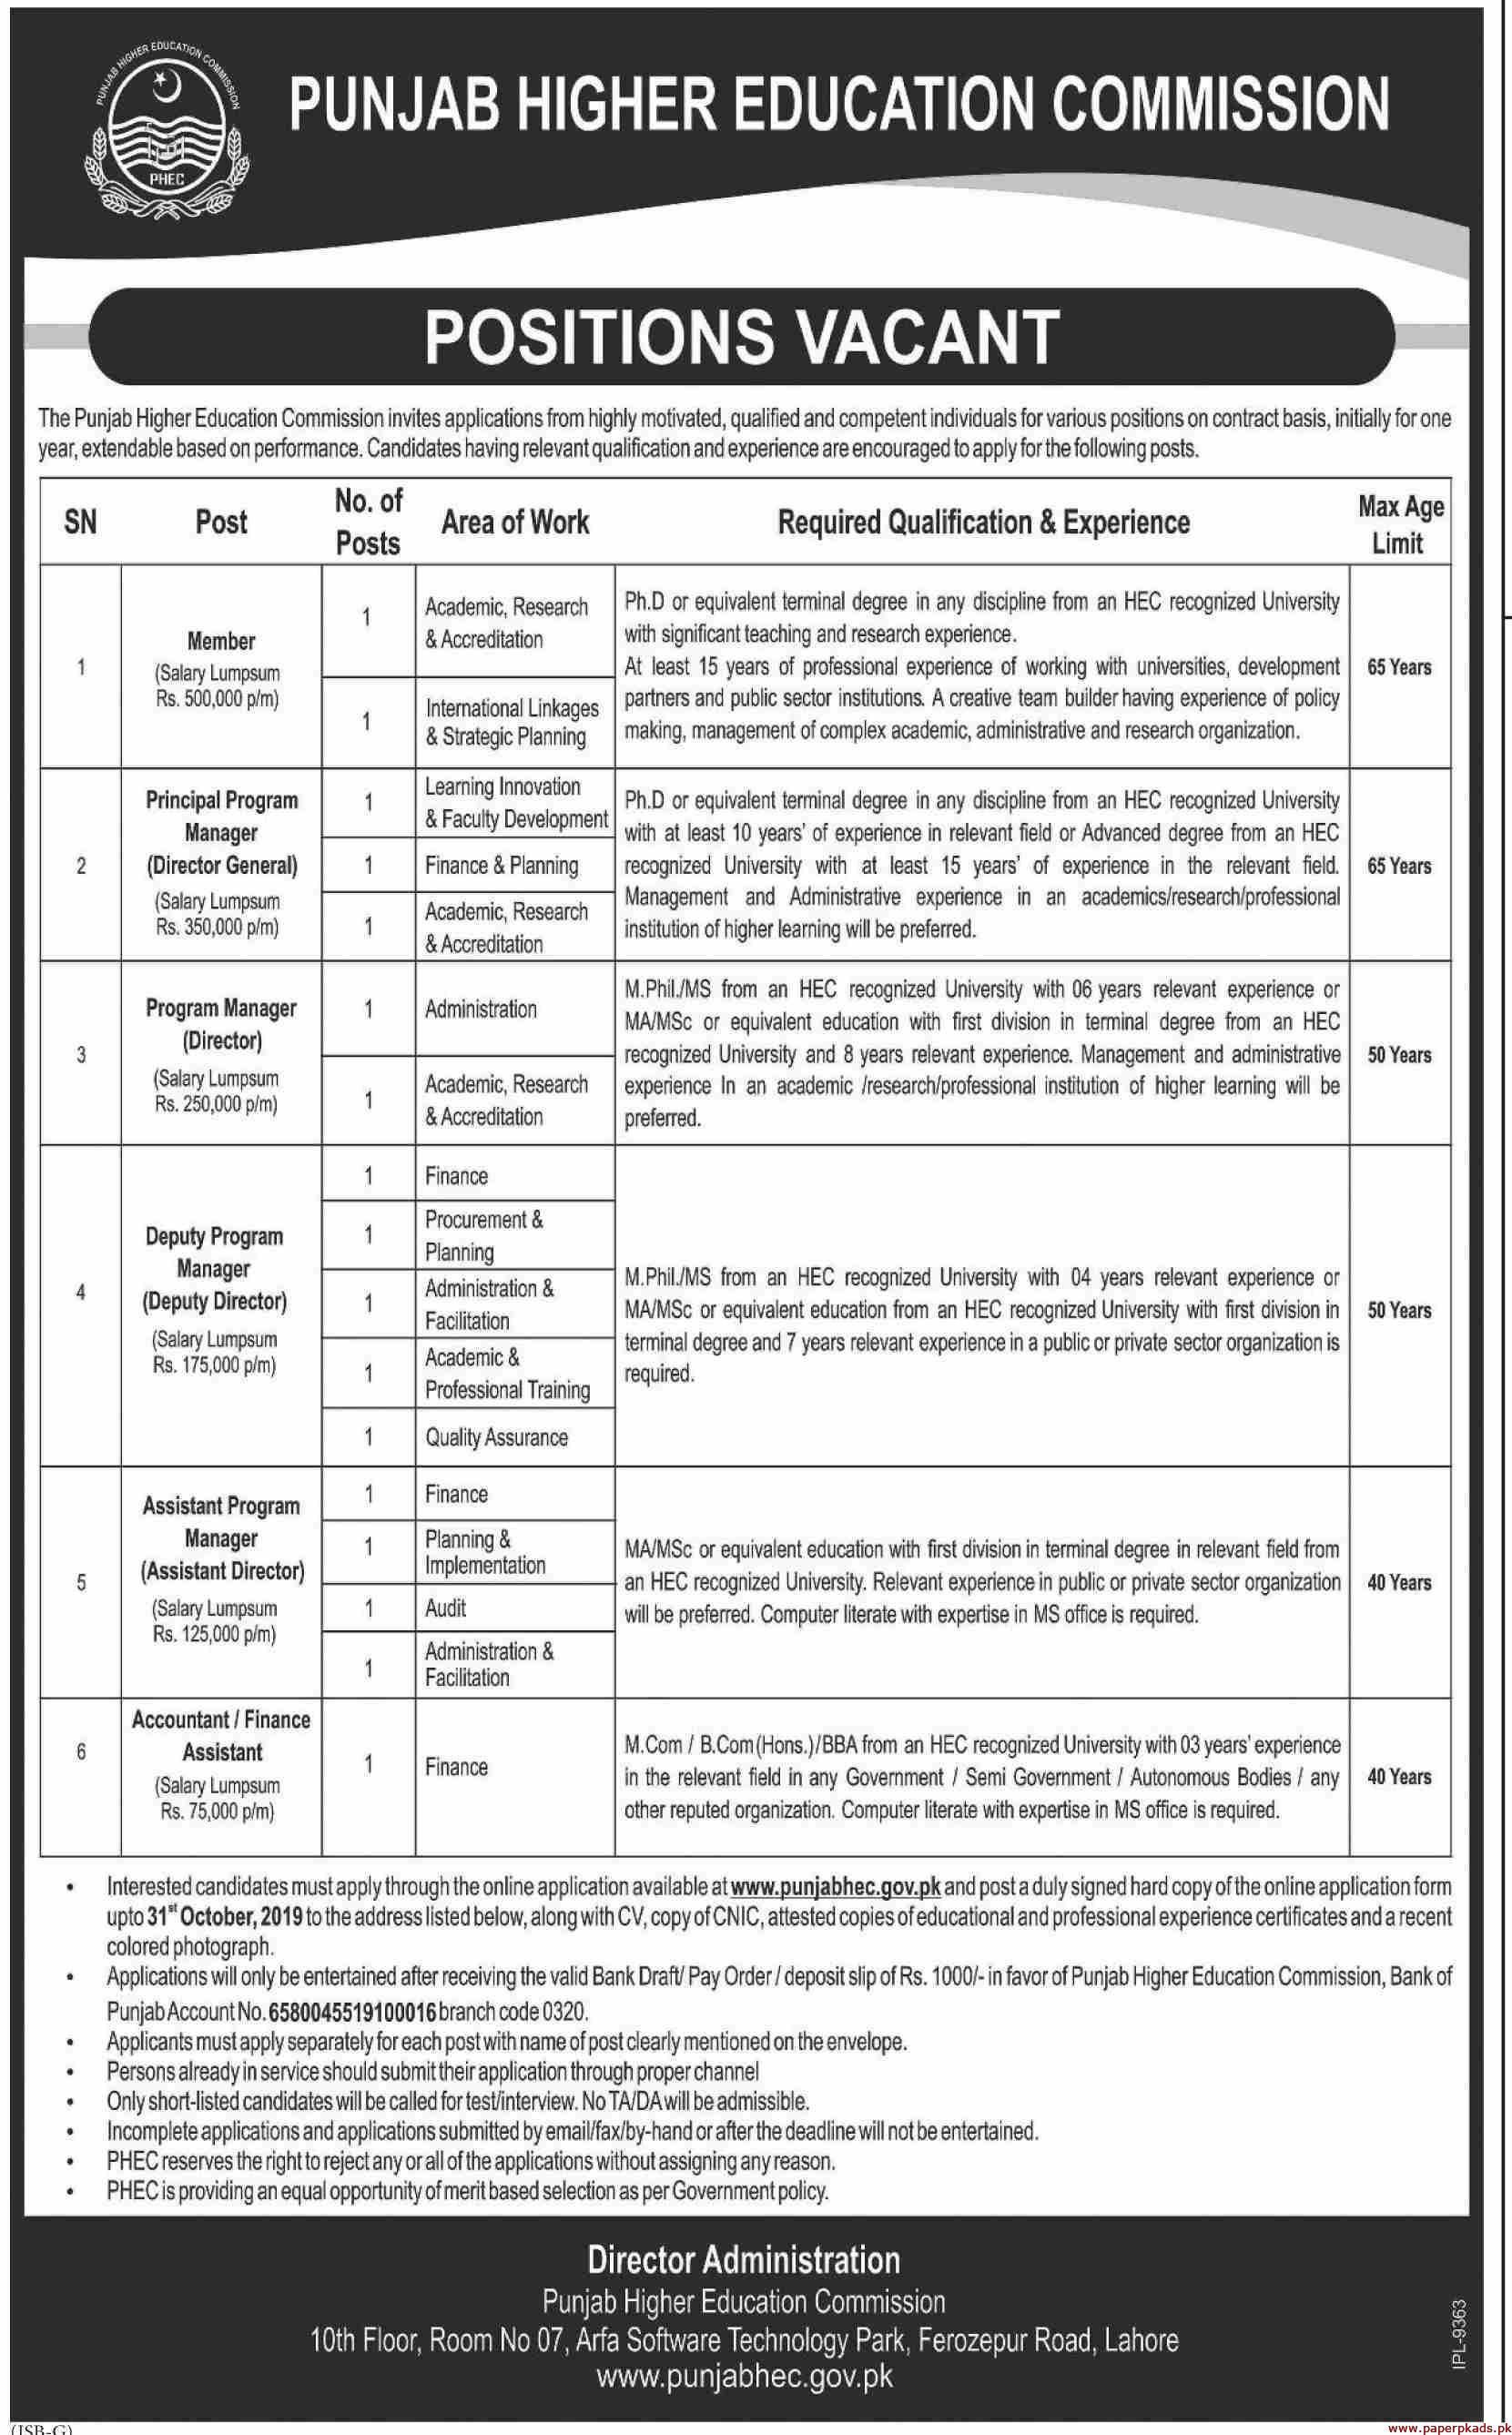 Punjab Higher Education Commission Jobs 2019 Latest